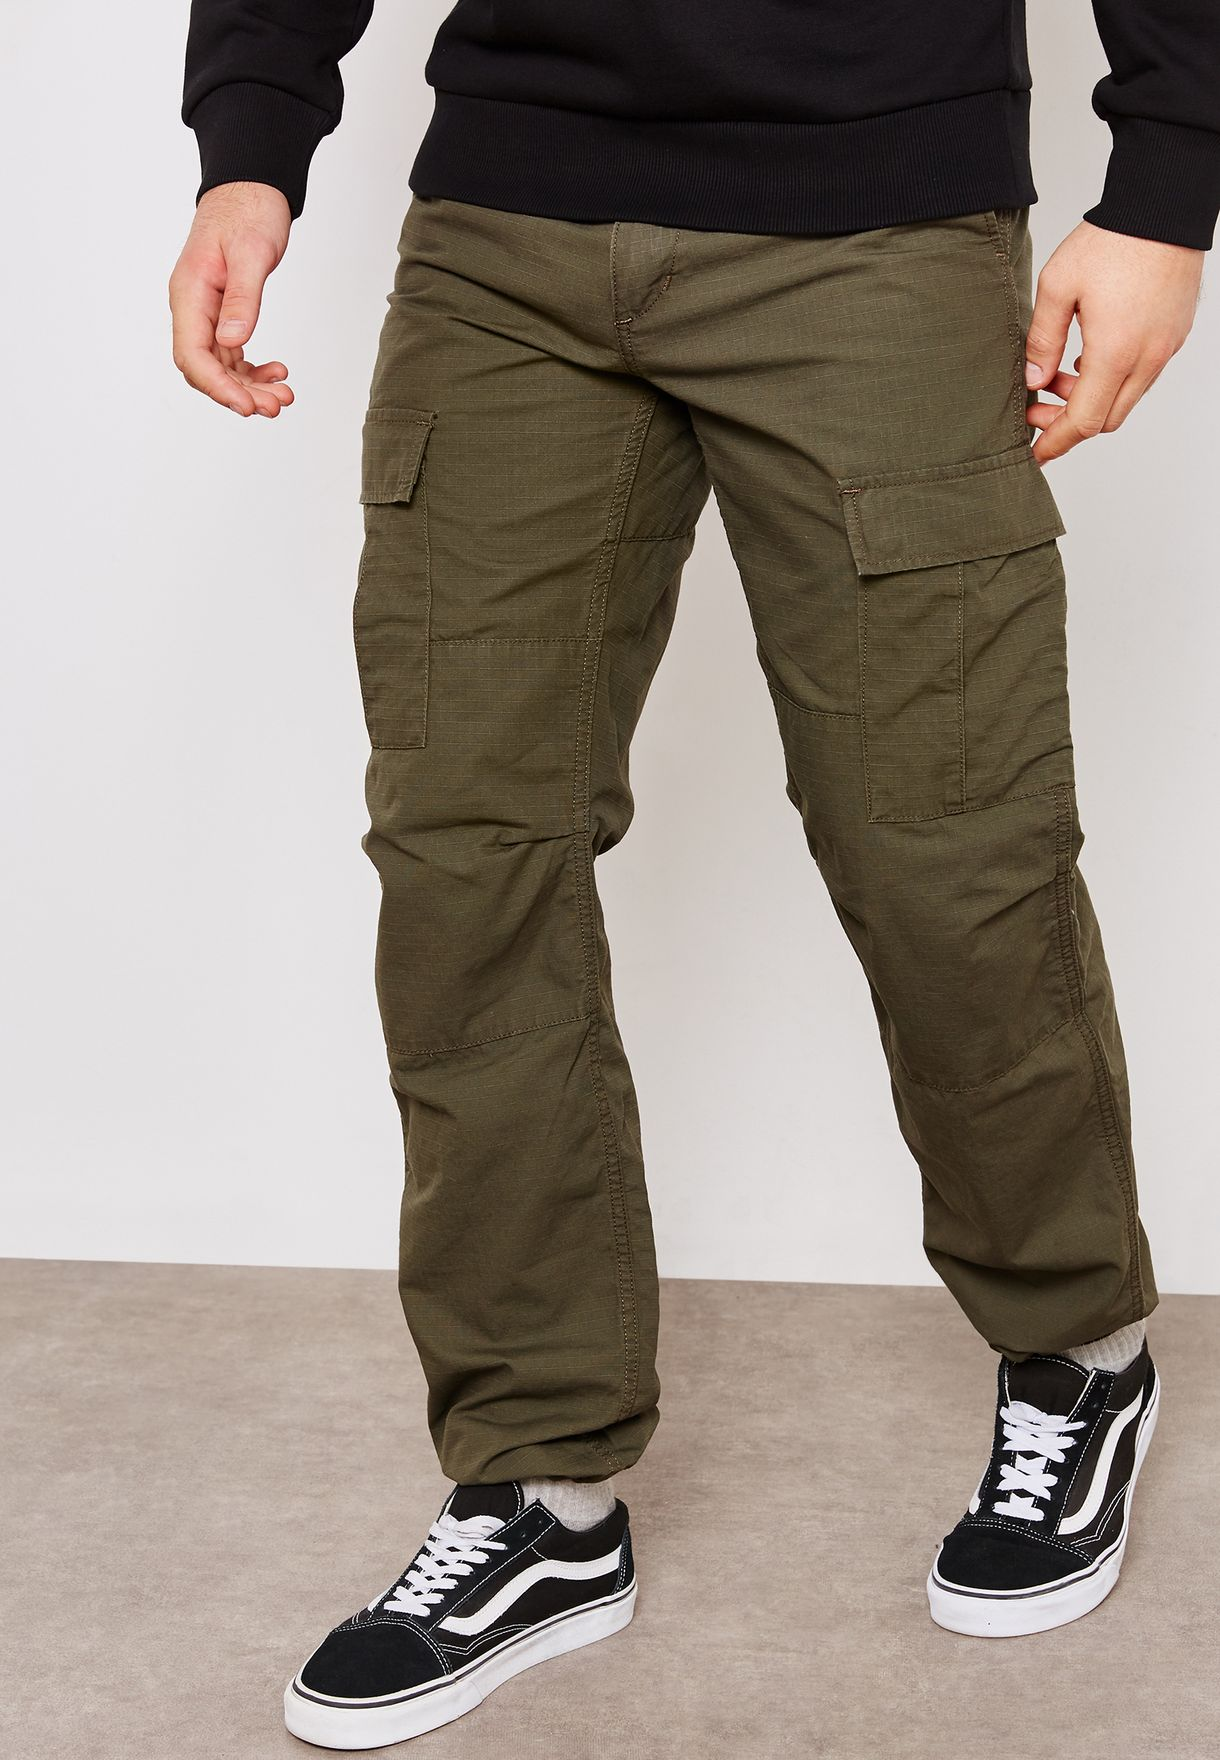 Aviation Camo Pants